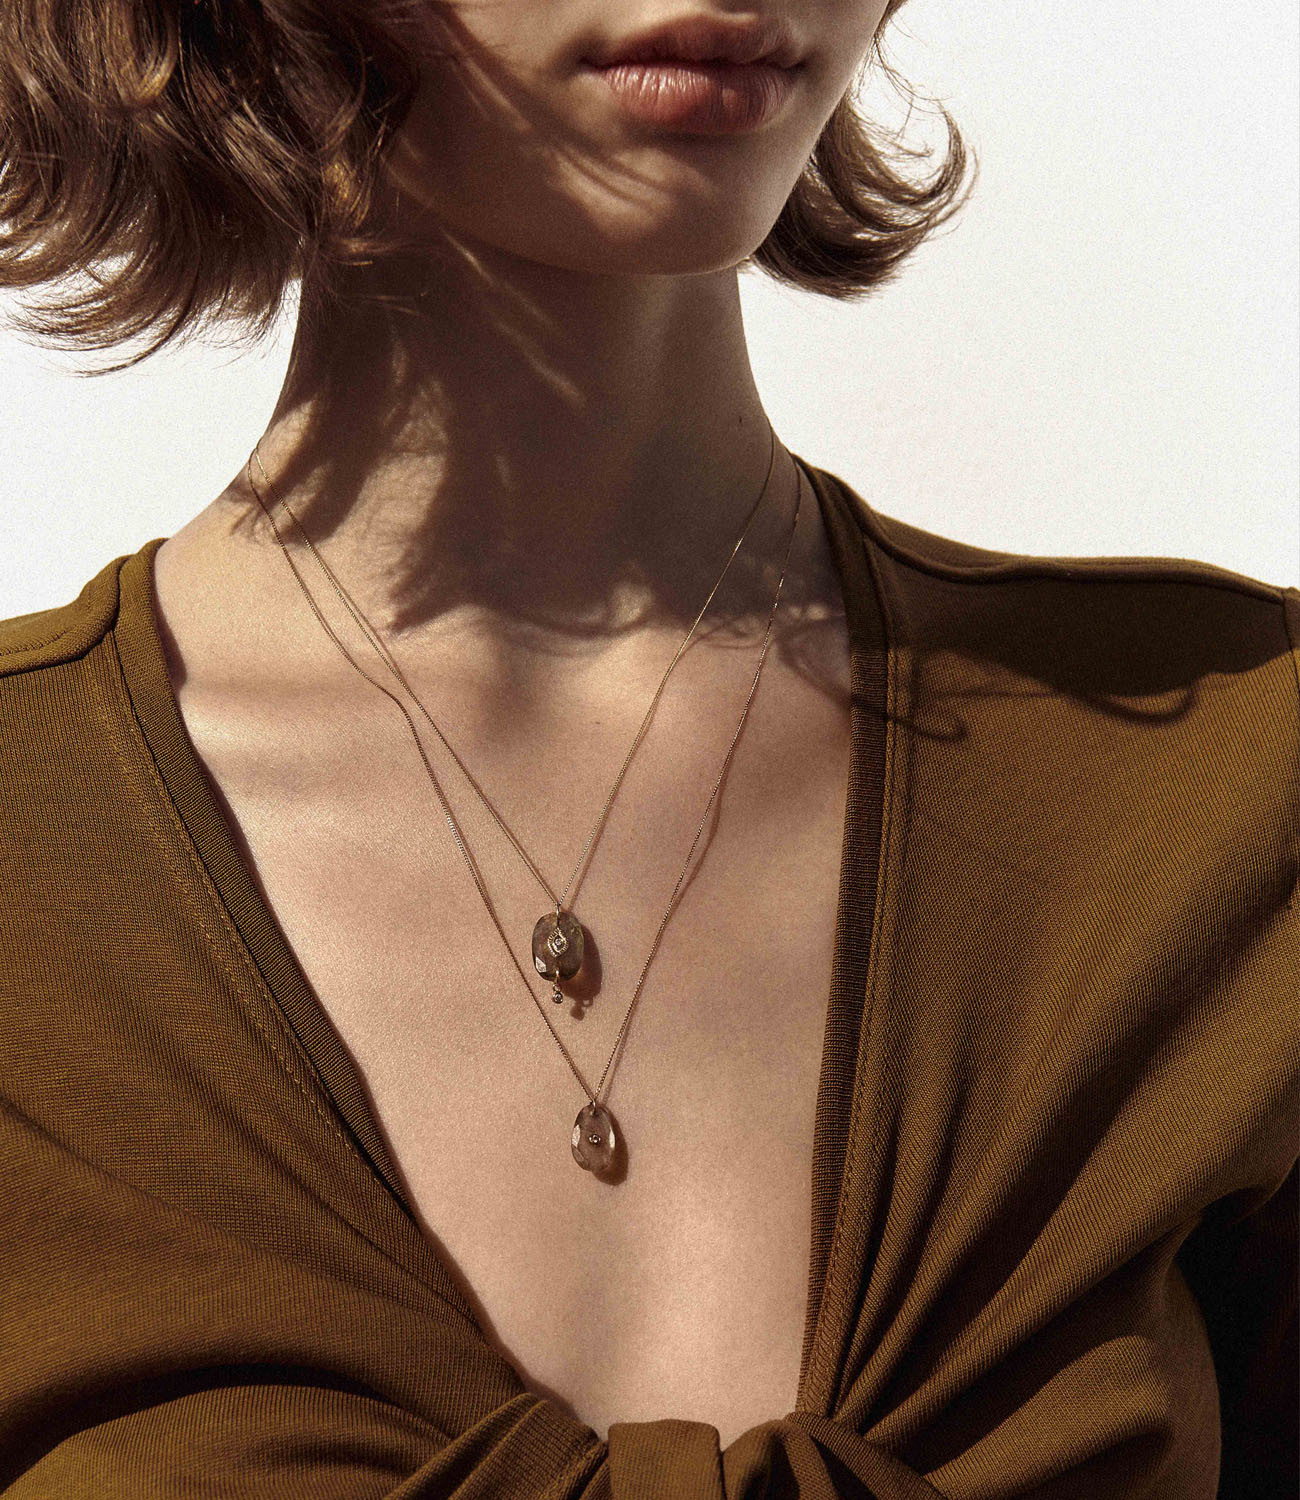 Pascale Monvoisin Necklace ORSO N°1 TURQUOISE